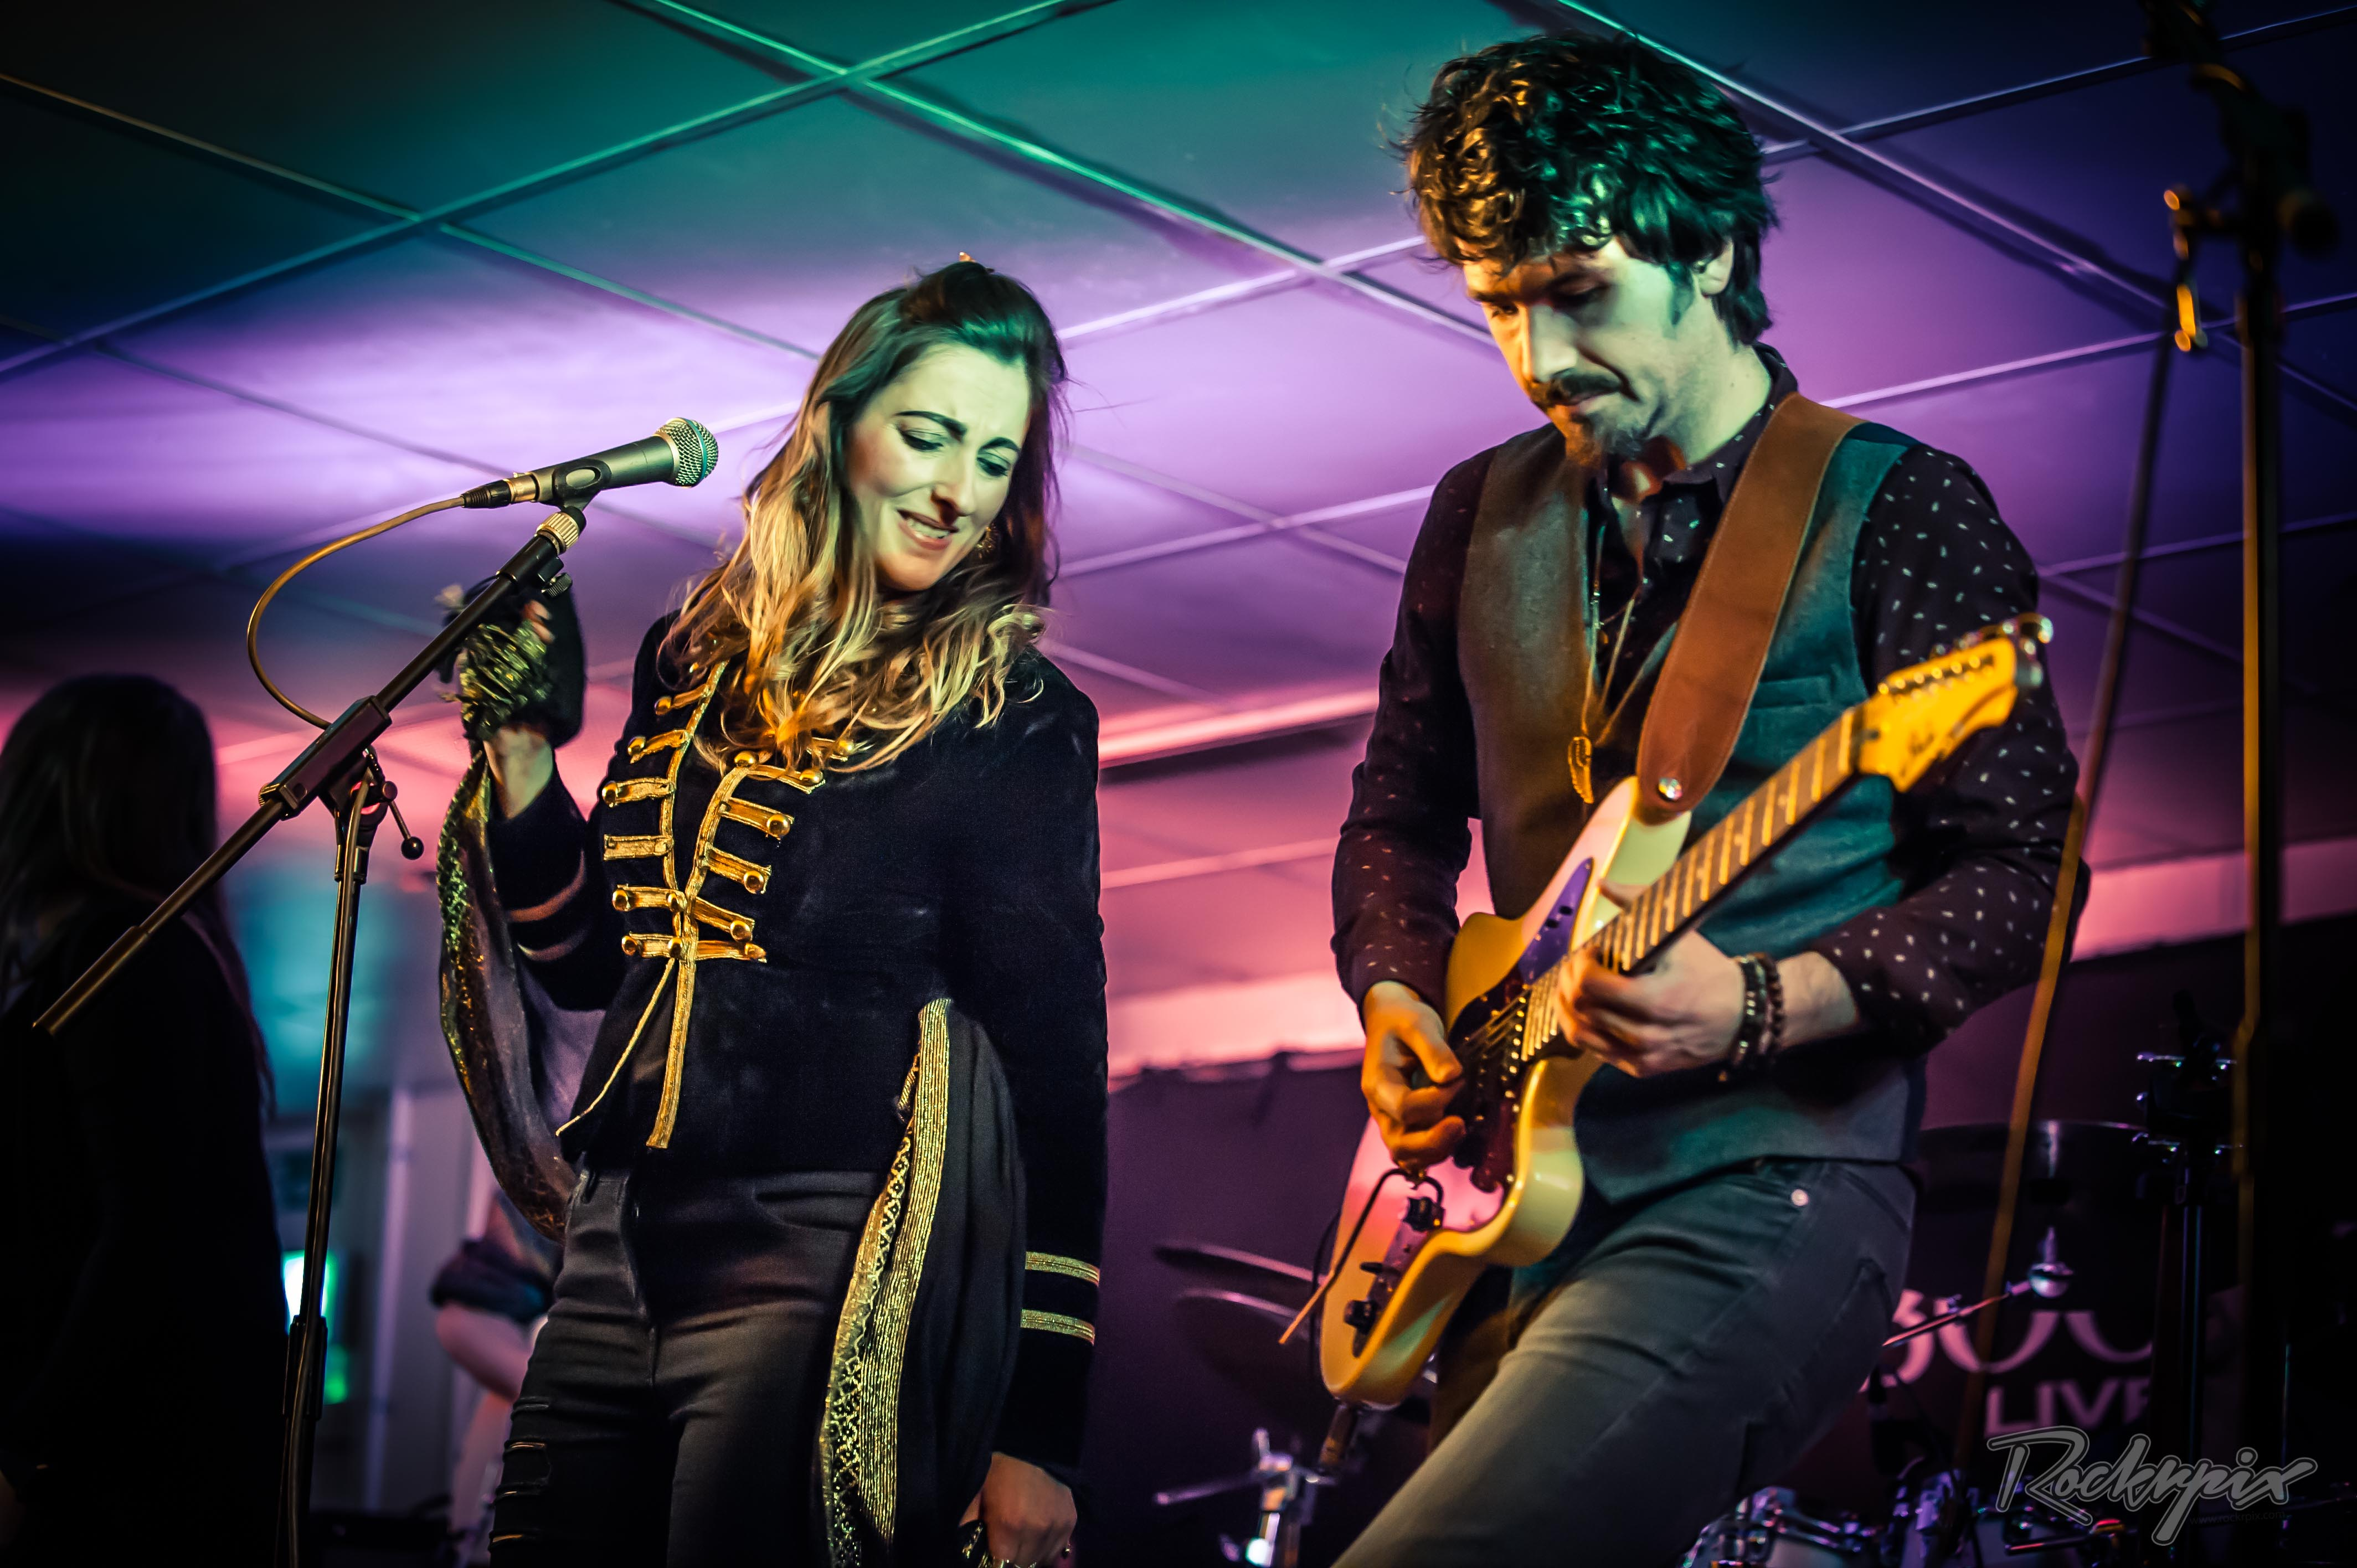 Lethbridge Owen Band – Boom Boom Club, Sutton, 23 March 2018